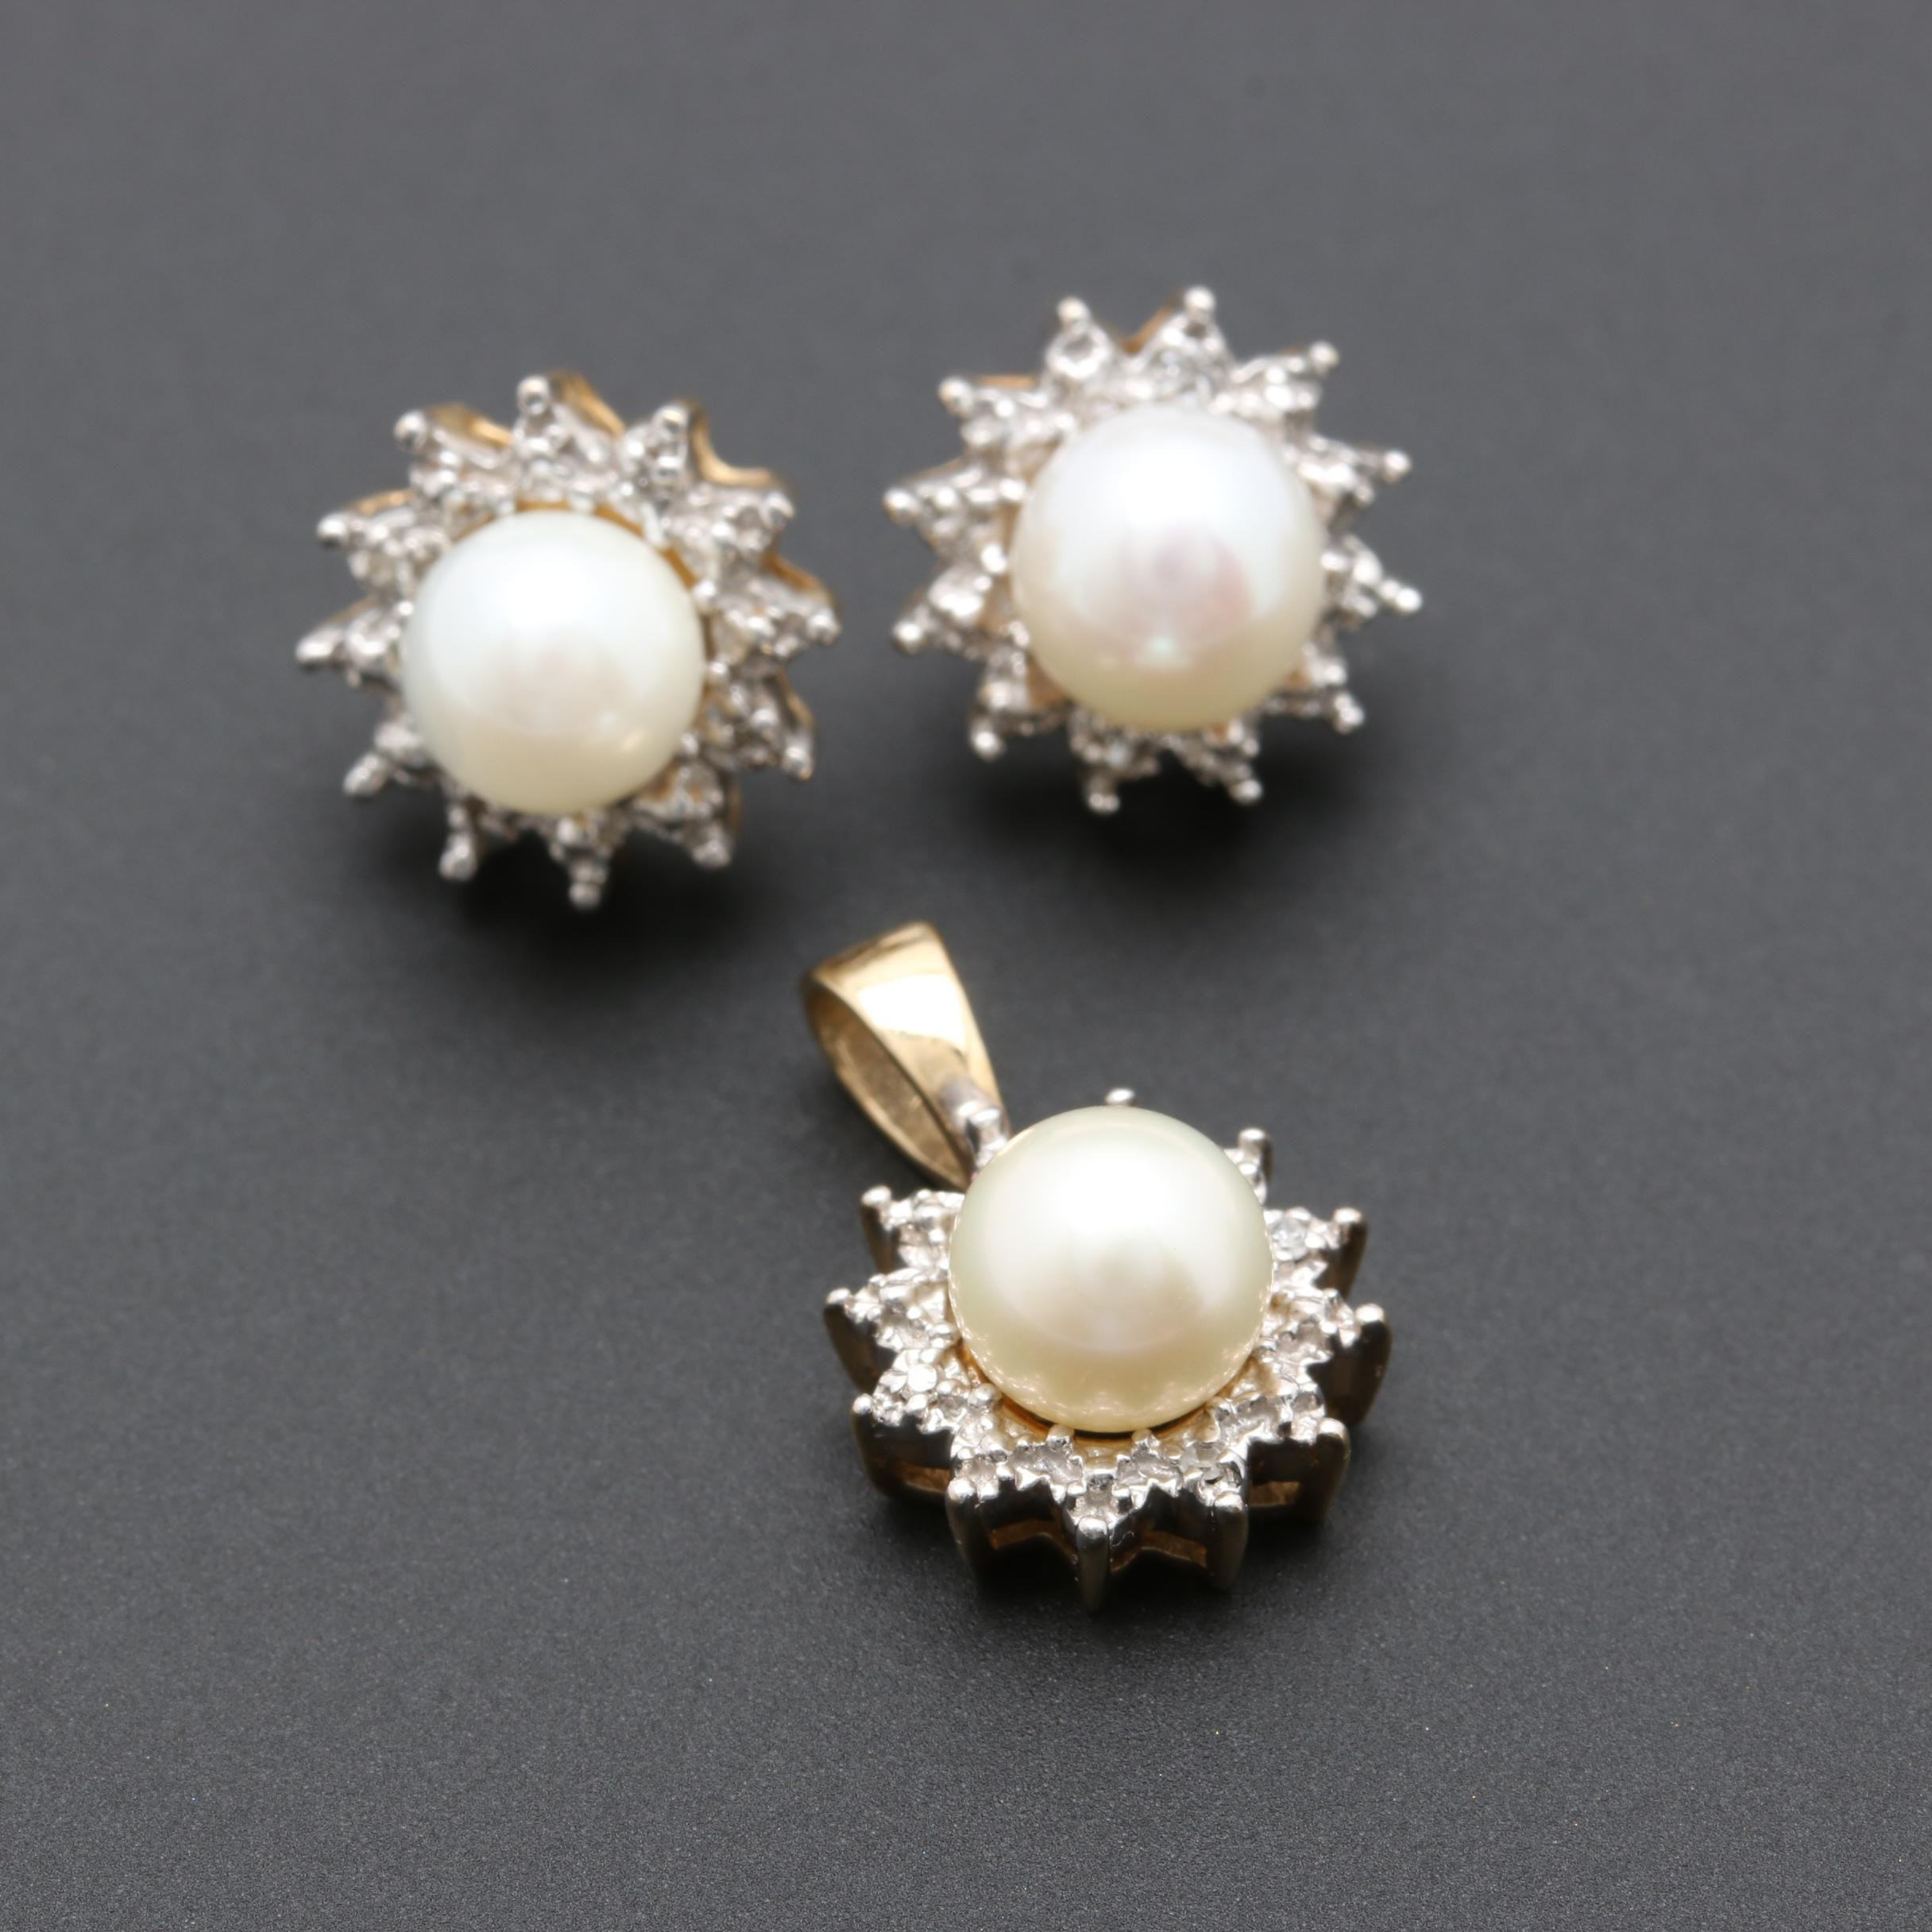 10K Yellow Gold Cultured Pearl and Diamond Earrings and Pendant Set